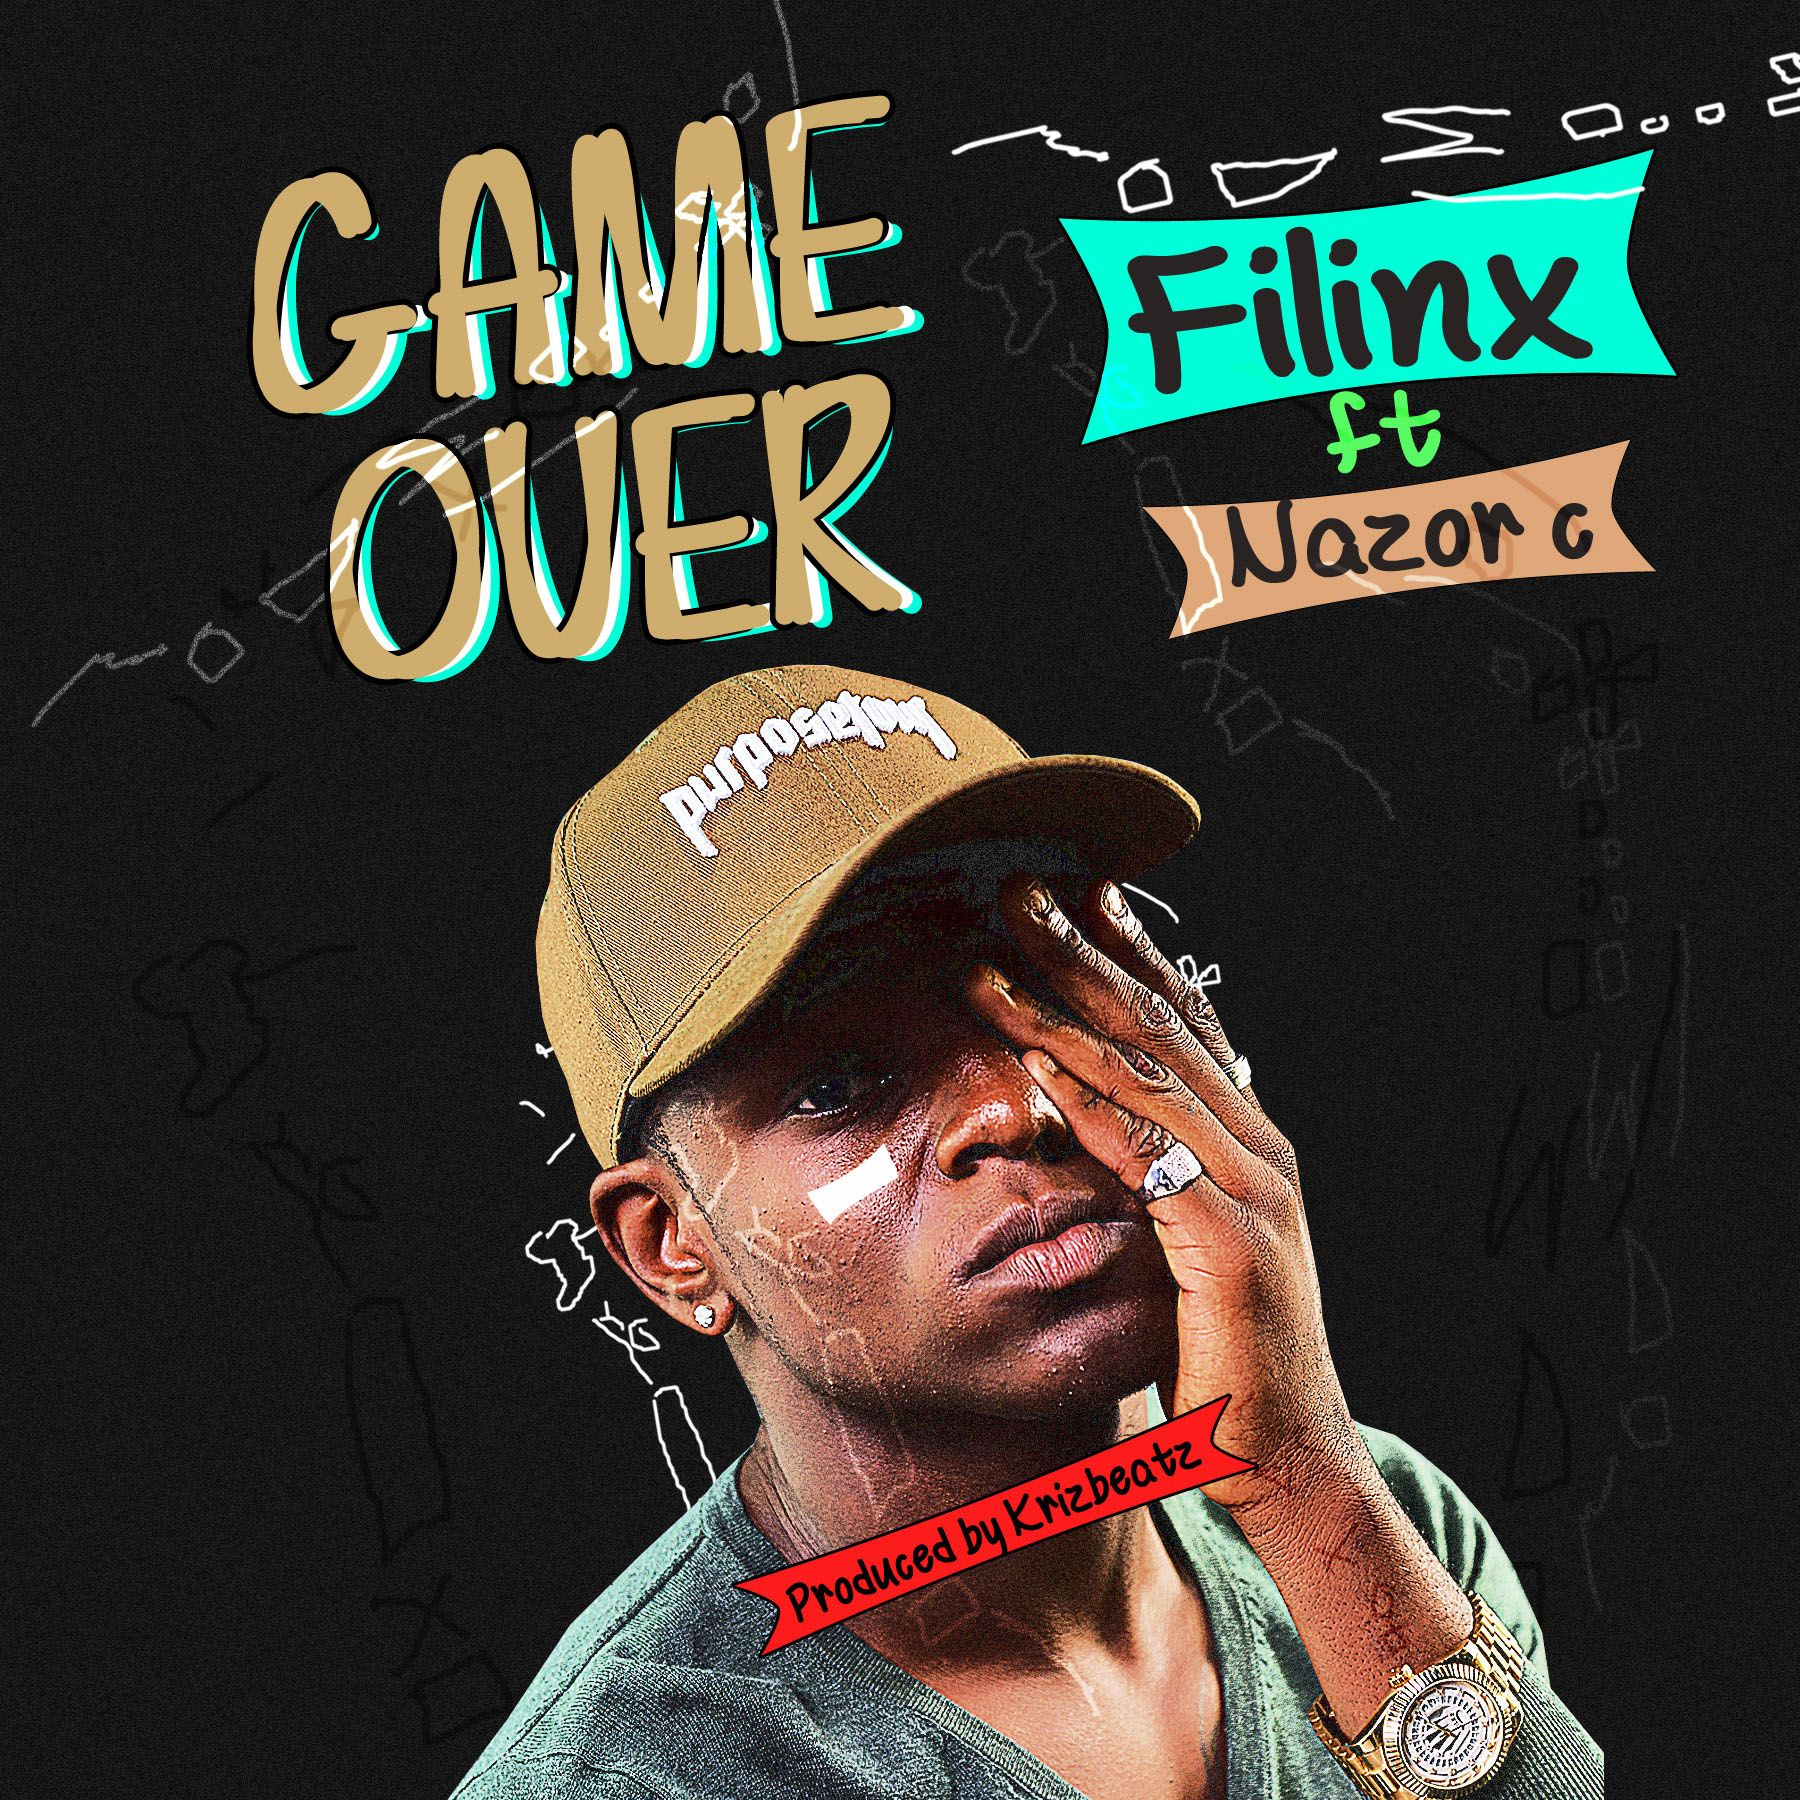 Game Over – Filinx Ft Nazor C (prod  by krizbeatz) Real name